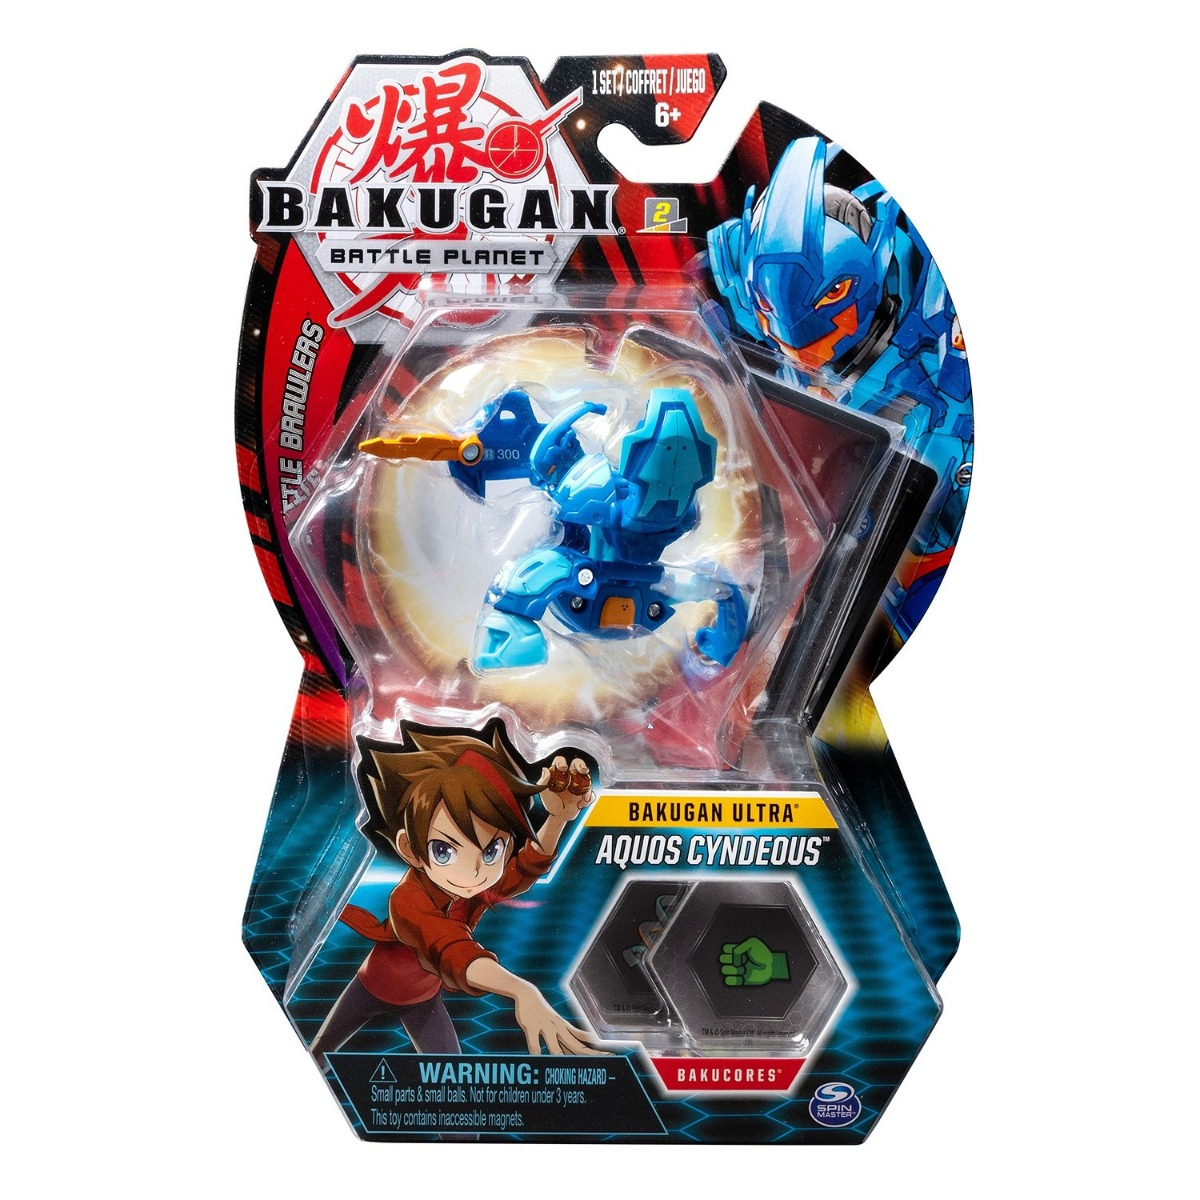 Figurina Bakugan Ultra Battle Planet, 9B Fire Knight Blue, 20107988